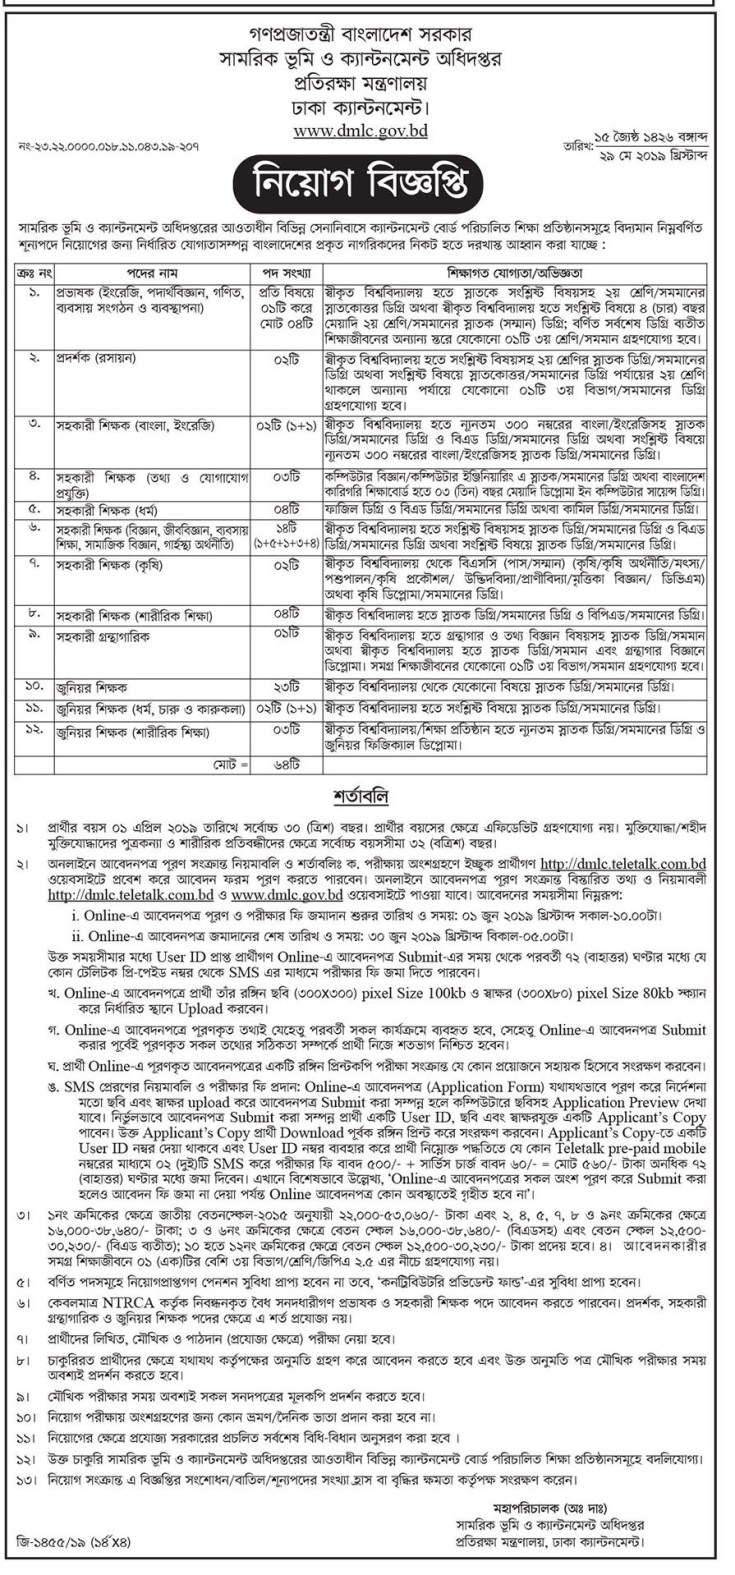 Ministry of Defence (MoD) Job Circular 2019 (3)